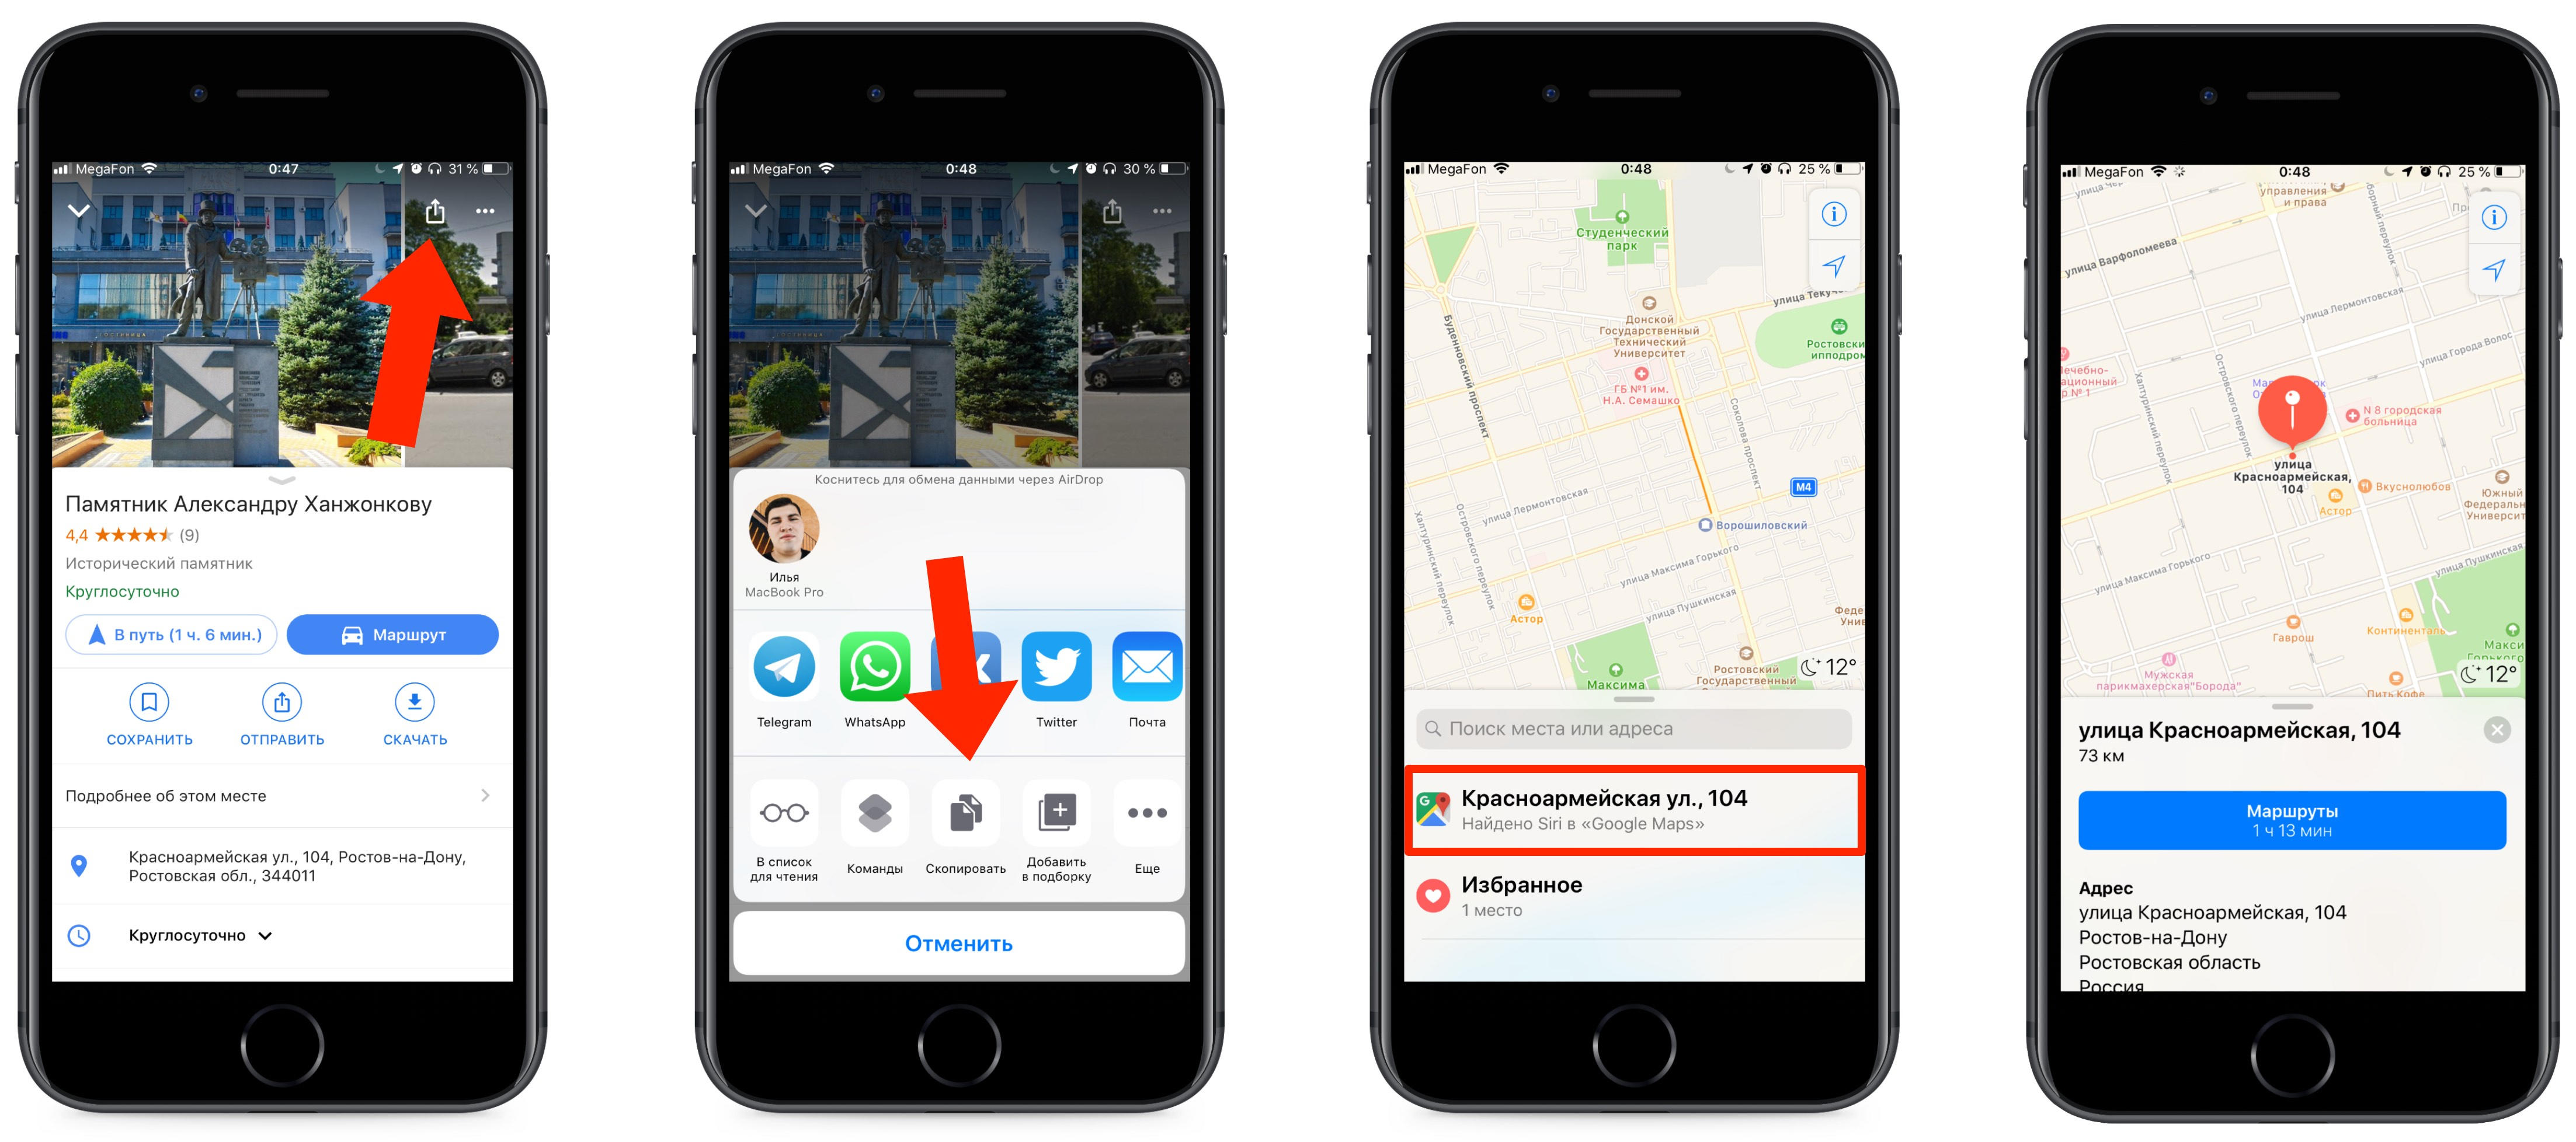 How to quickly access addresses from Google Maps to Apple Maps